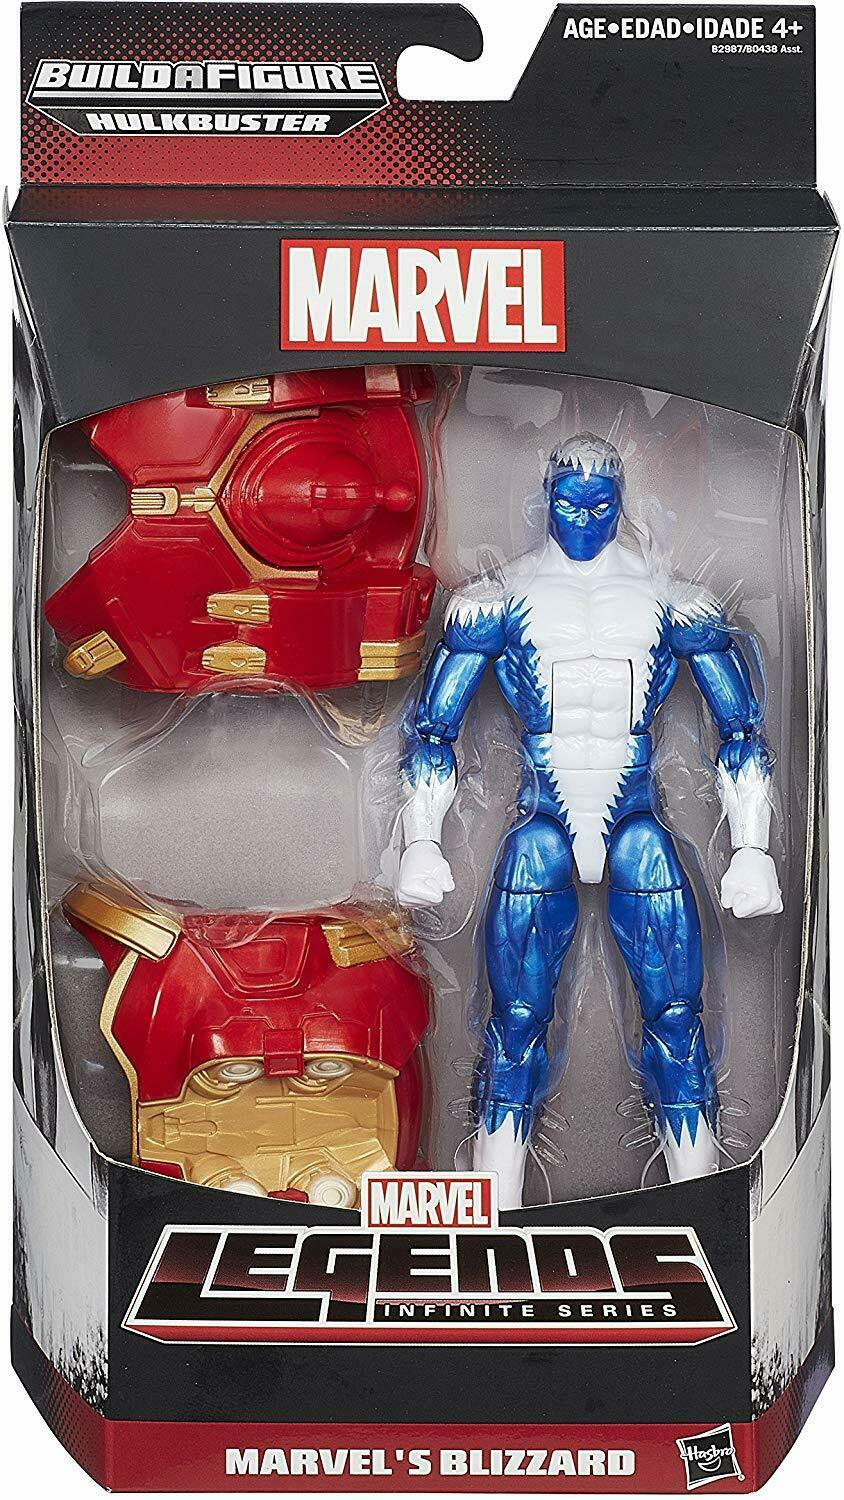 2015 Marvel Legends Infinite Series BLIZZARD HULKBUSTER Series Sealed NEW